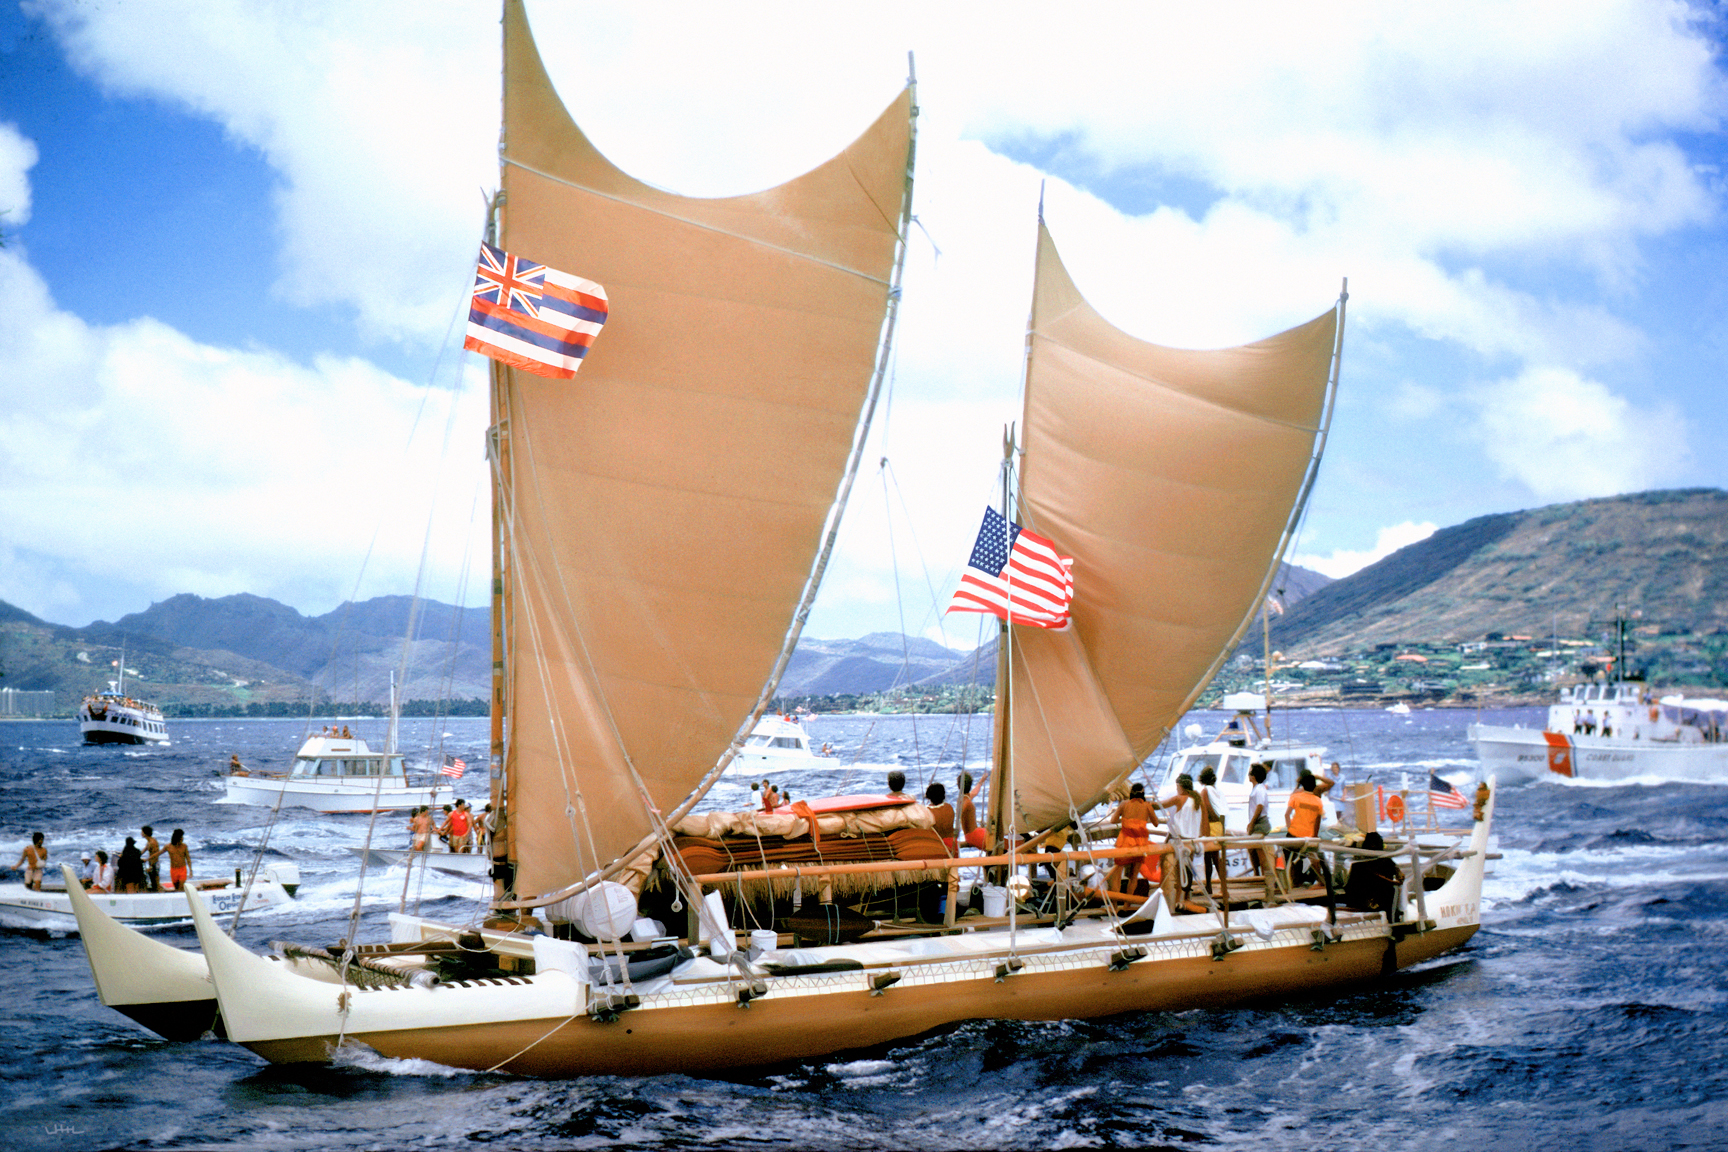 Hokule'a arrival in Honolulu from Tahiti in 1976; via Wikimedia Commons